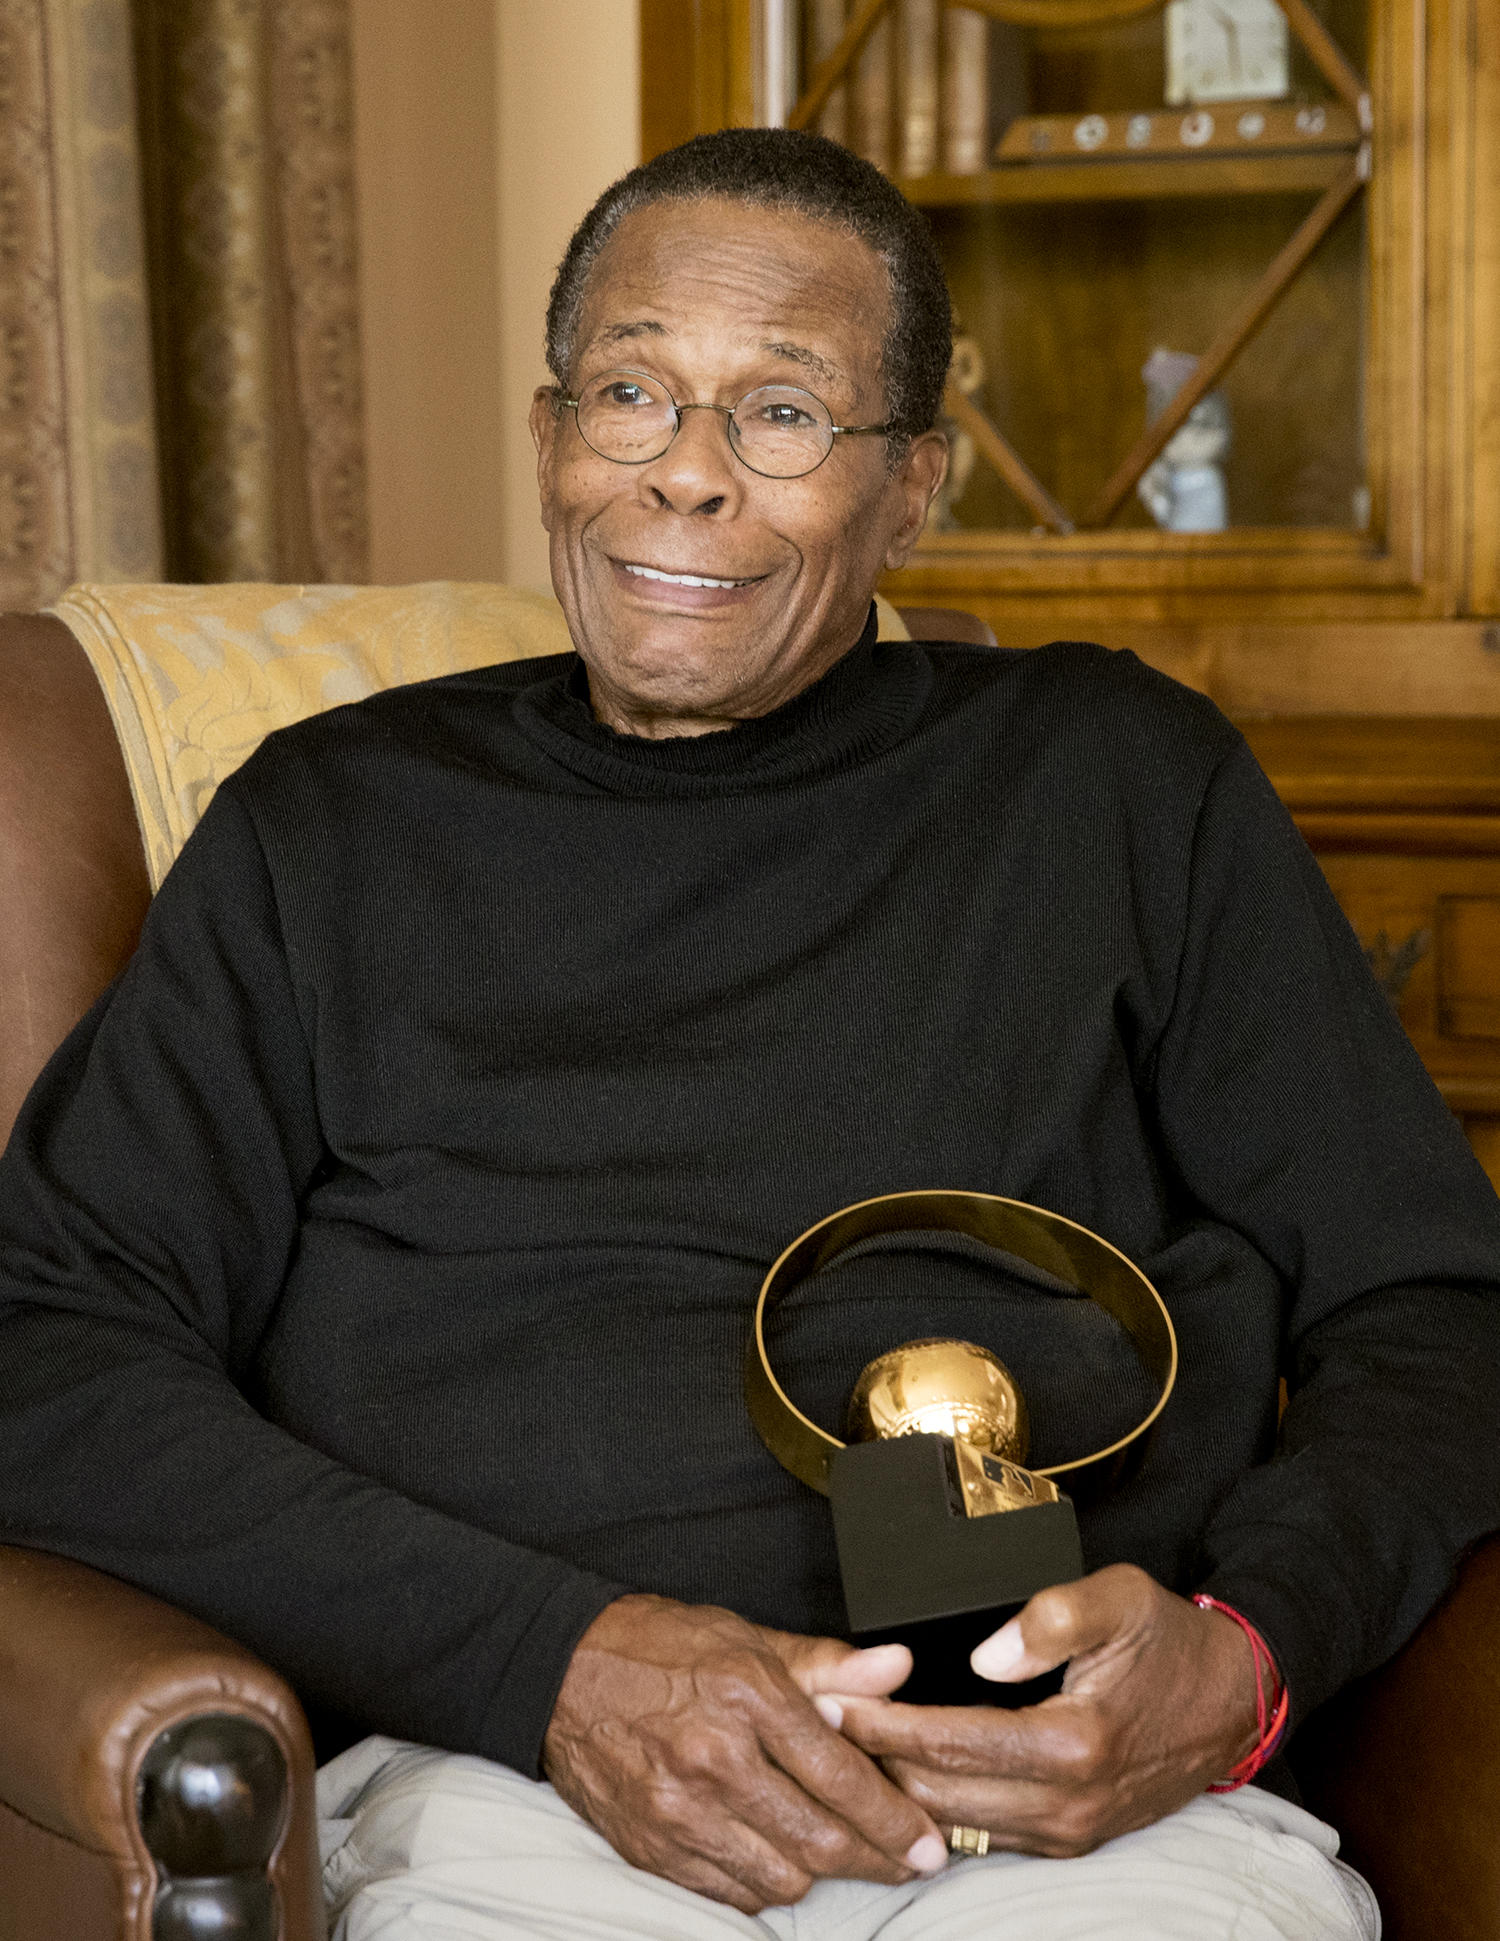 Rod Carew cherishes his 1977 AL MVP Award, but it's another trophy from that year – the Roberto Clemente Award – that has become Carew's favorite. (Jean Fruth / National Baseball Hall of Fame)